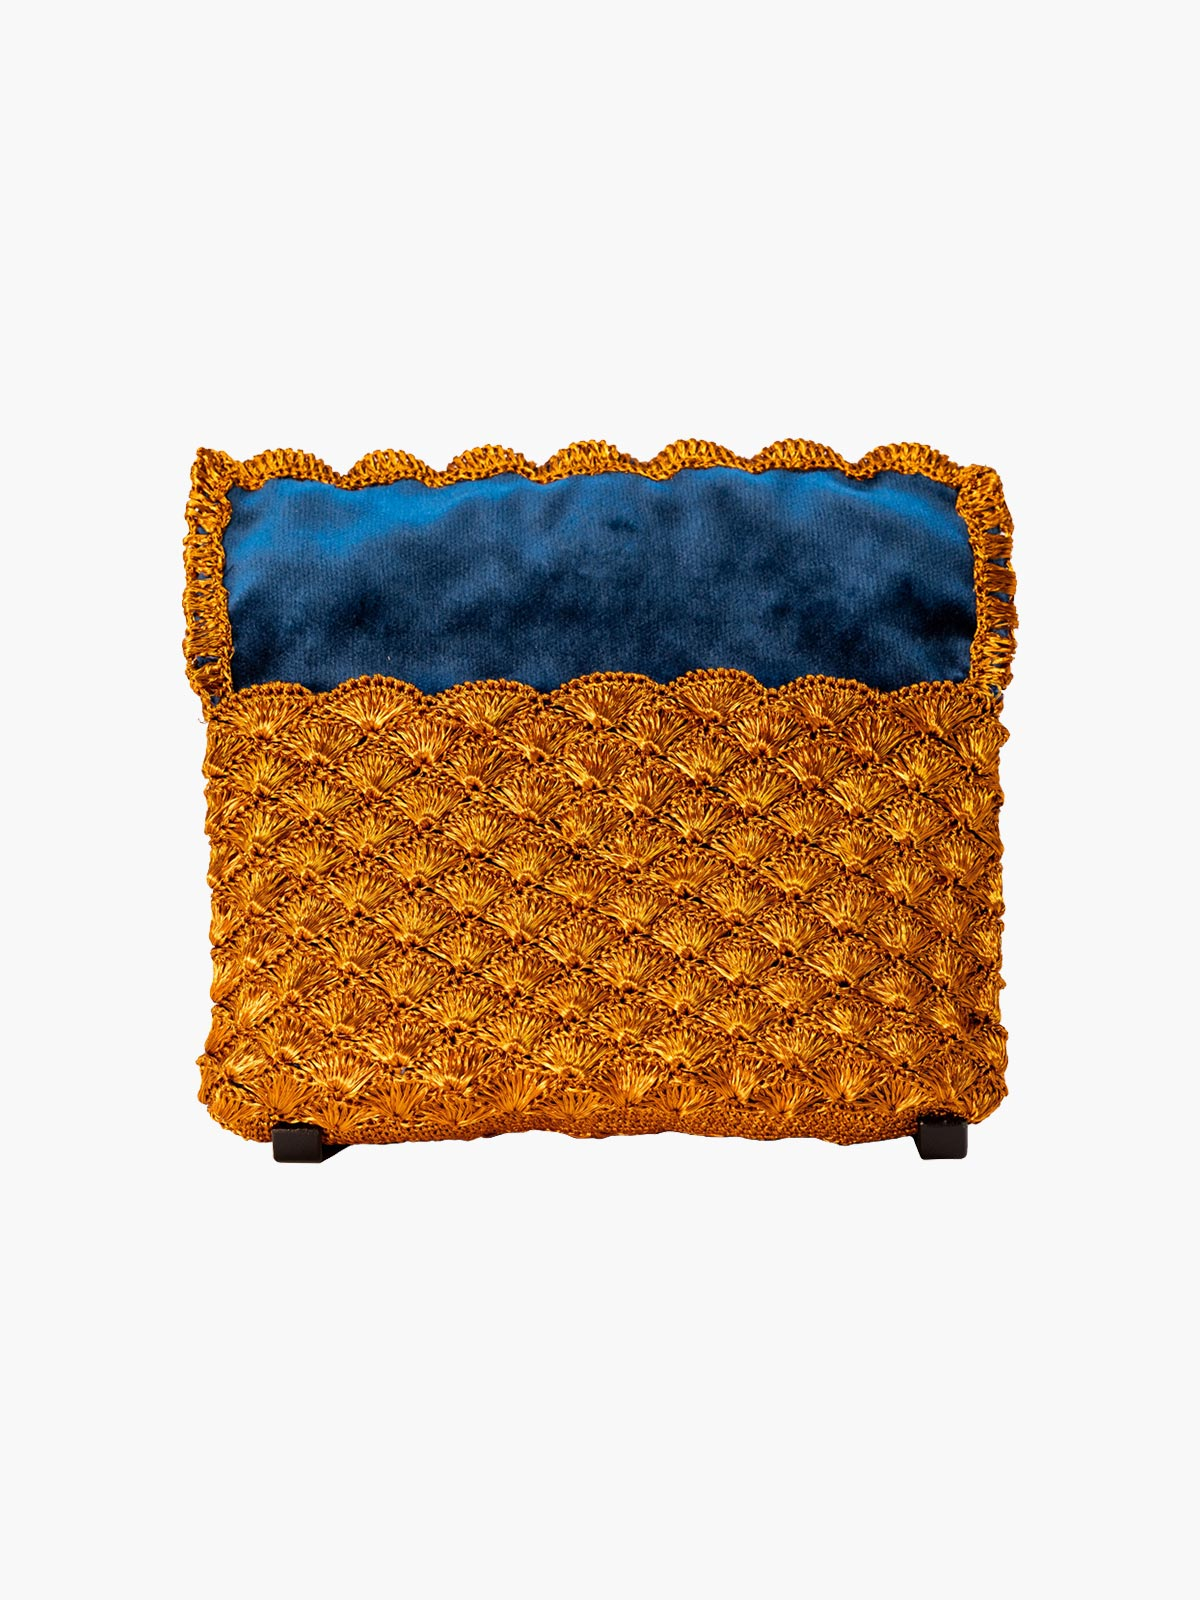 Seashell Weave Mini Metal Clutch | Copper Seashell Weave Mini Metal Clutch | Copper